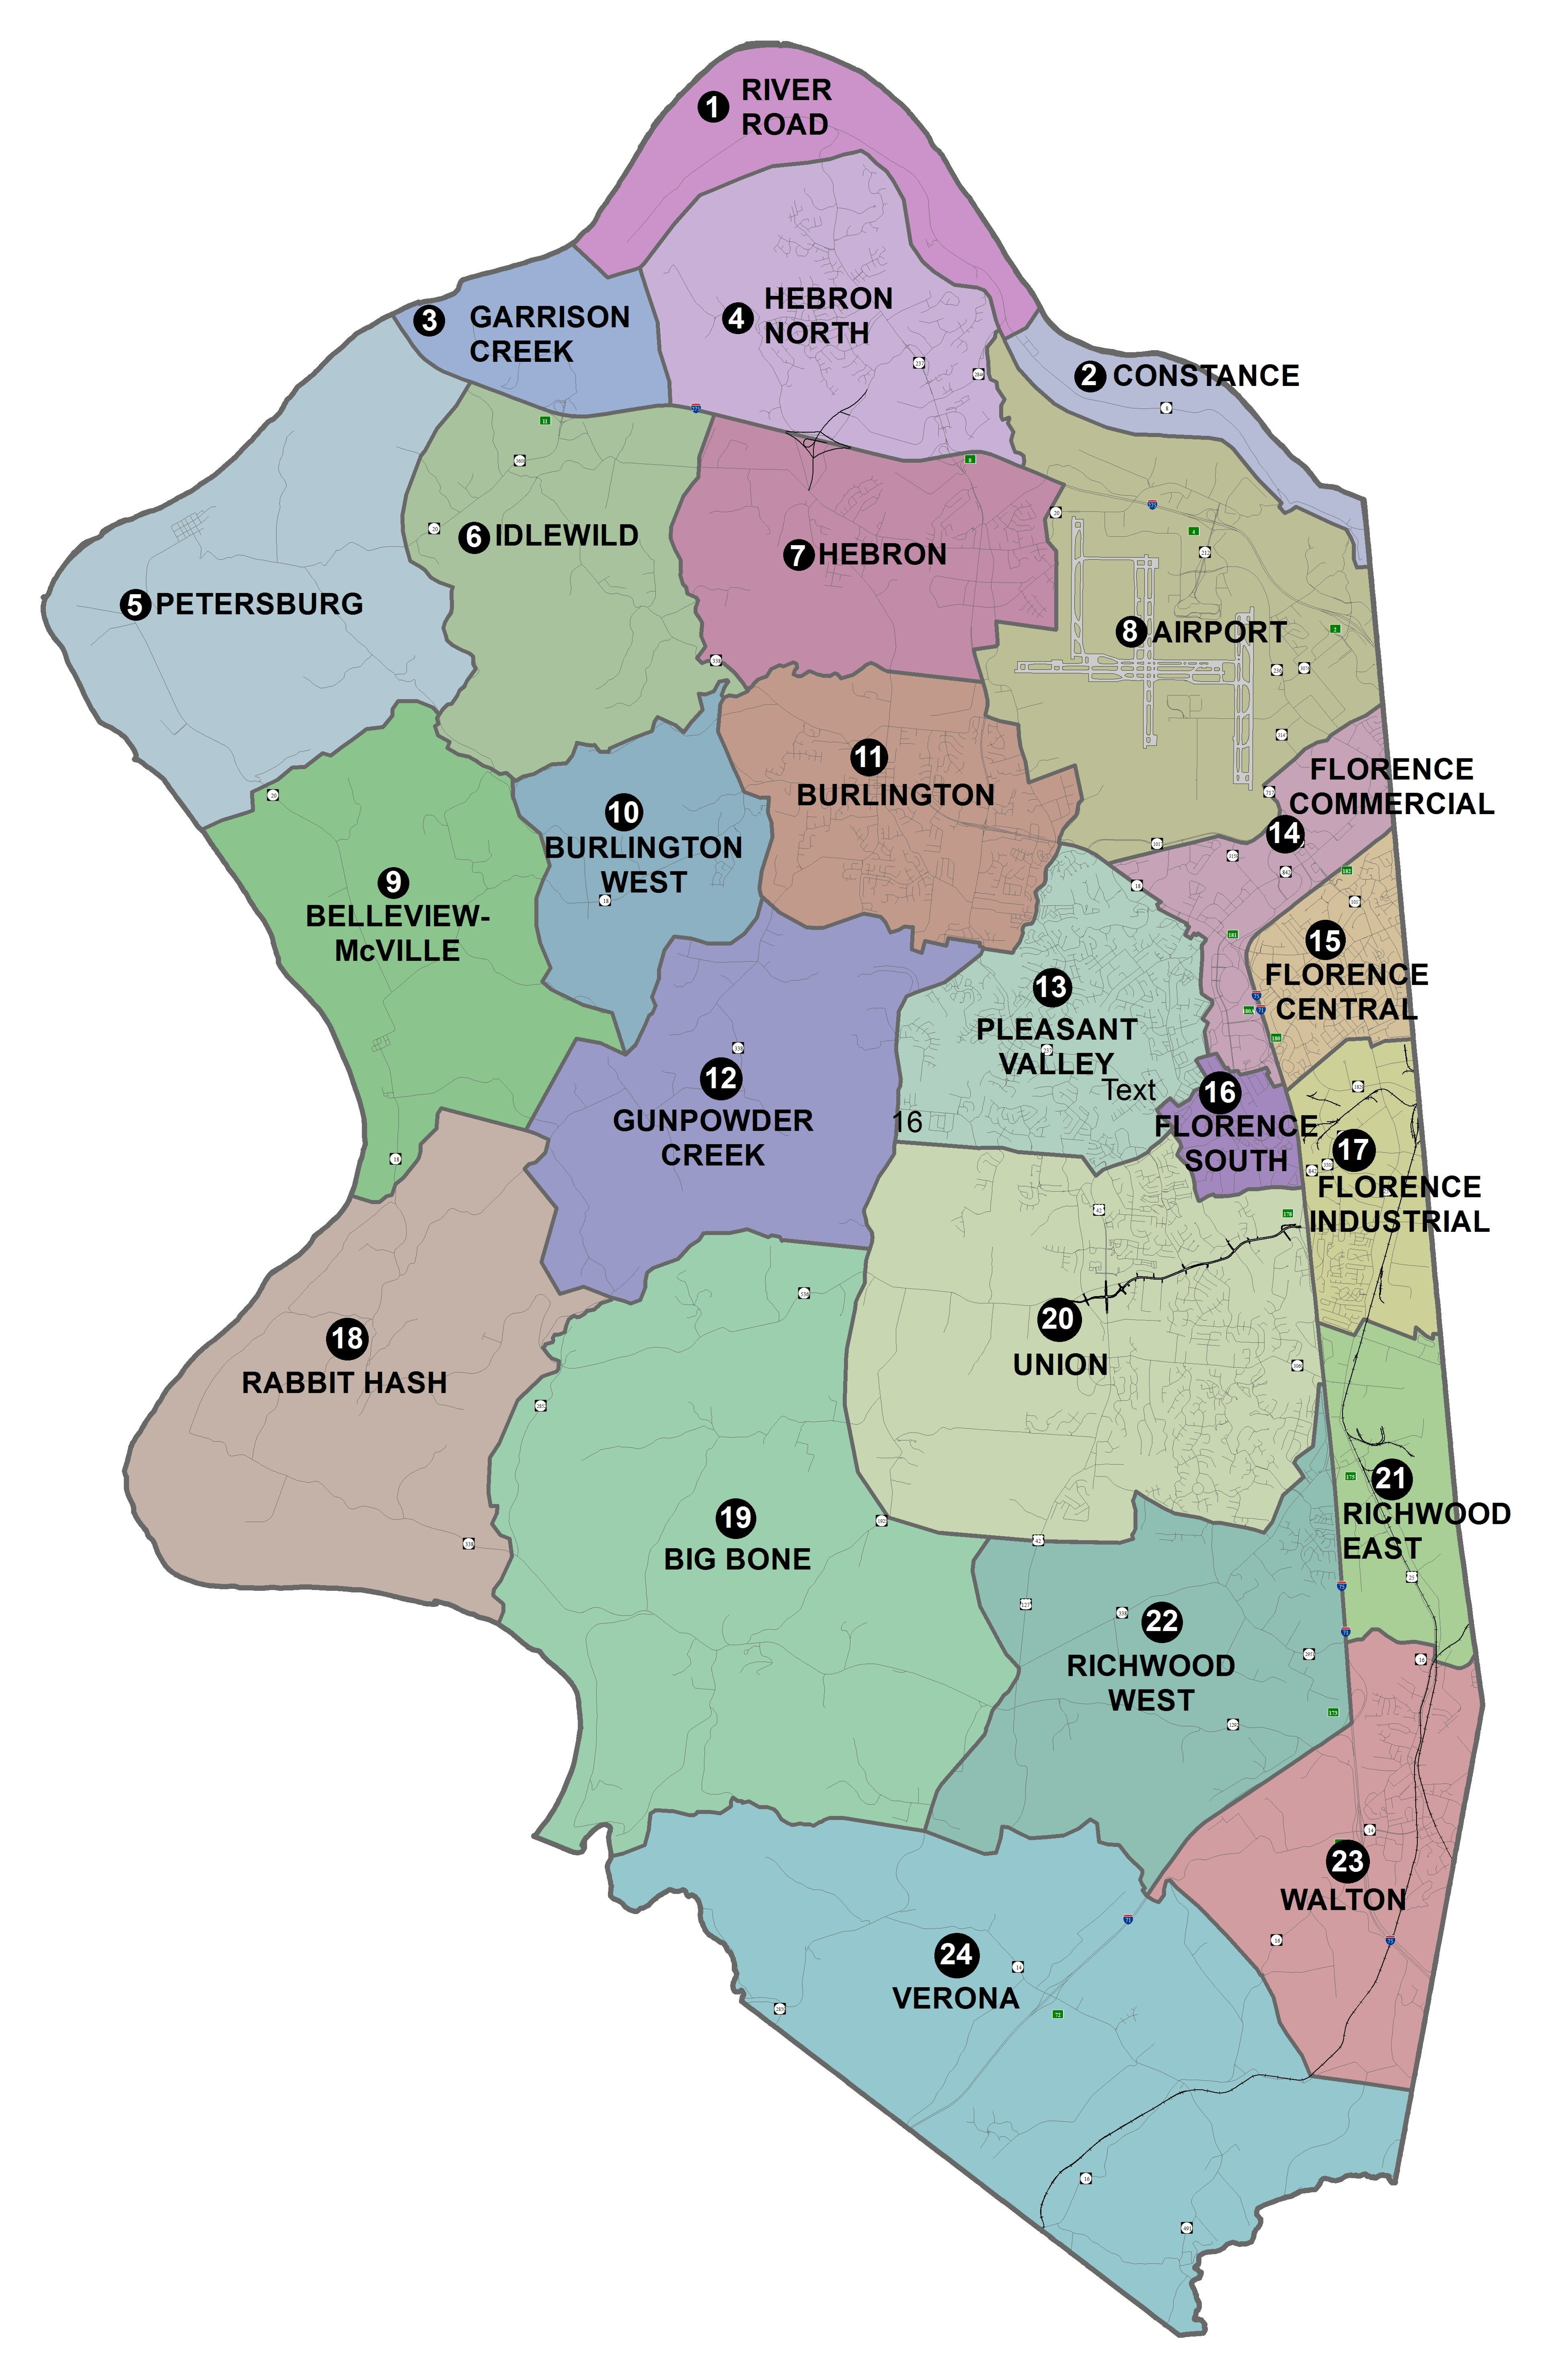 Map of Boone County future land use geographic areas. From north to south and west to east: River Road 1, Constance 2, Garrison Creek 3, Hebron North 4, Petersburg 5, Idlewild 6, Hebron 7, Airport 8, Belleview McVille 9, Burlington West 10, Burlington 11, Gunpowder Creek 12, Pleasant Valley 13, Florence Commercial 14, Florence Central 15, Florence Industrial 17, Rabbit Hash 18, Big Bone 19, Union 20, Richwood East 21, Richwood West 22, Walton 23, Verona 24